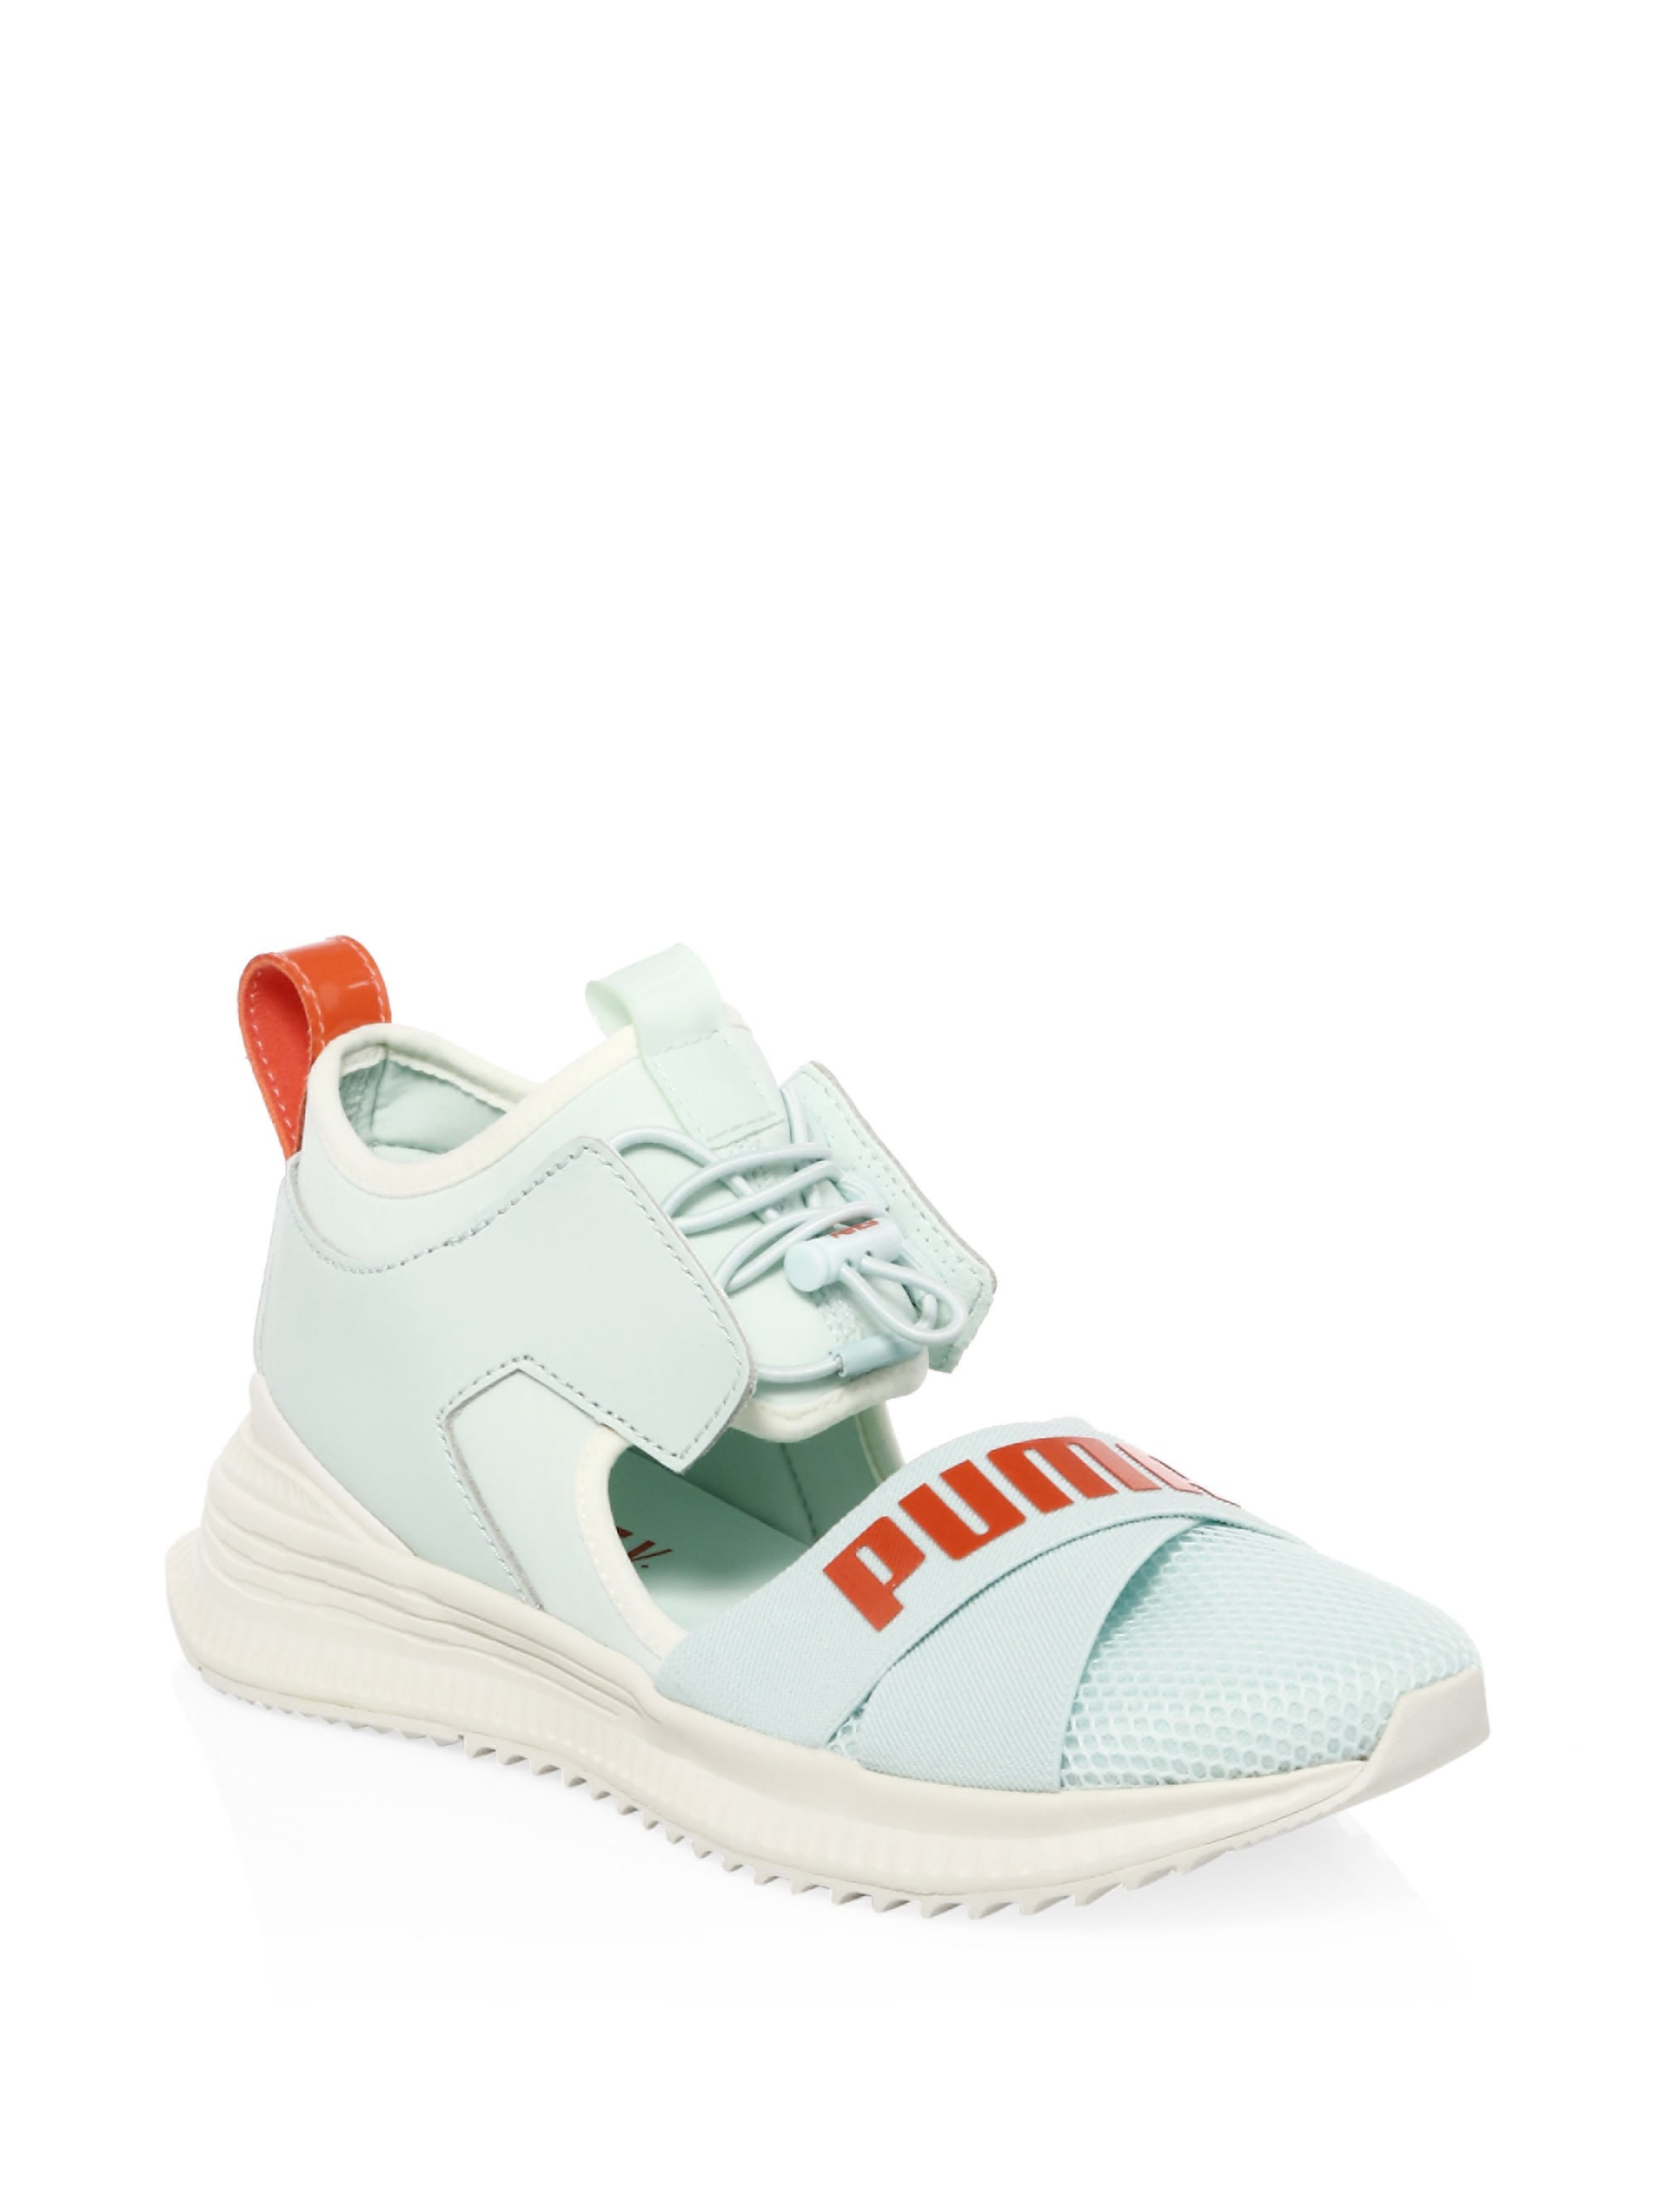 ee711054bd0 Fenty Avid Cut-Out Sneakers by Puma in 2019